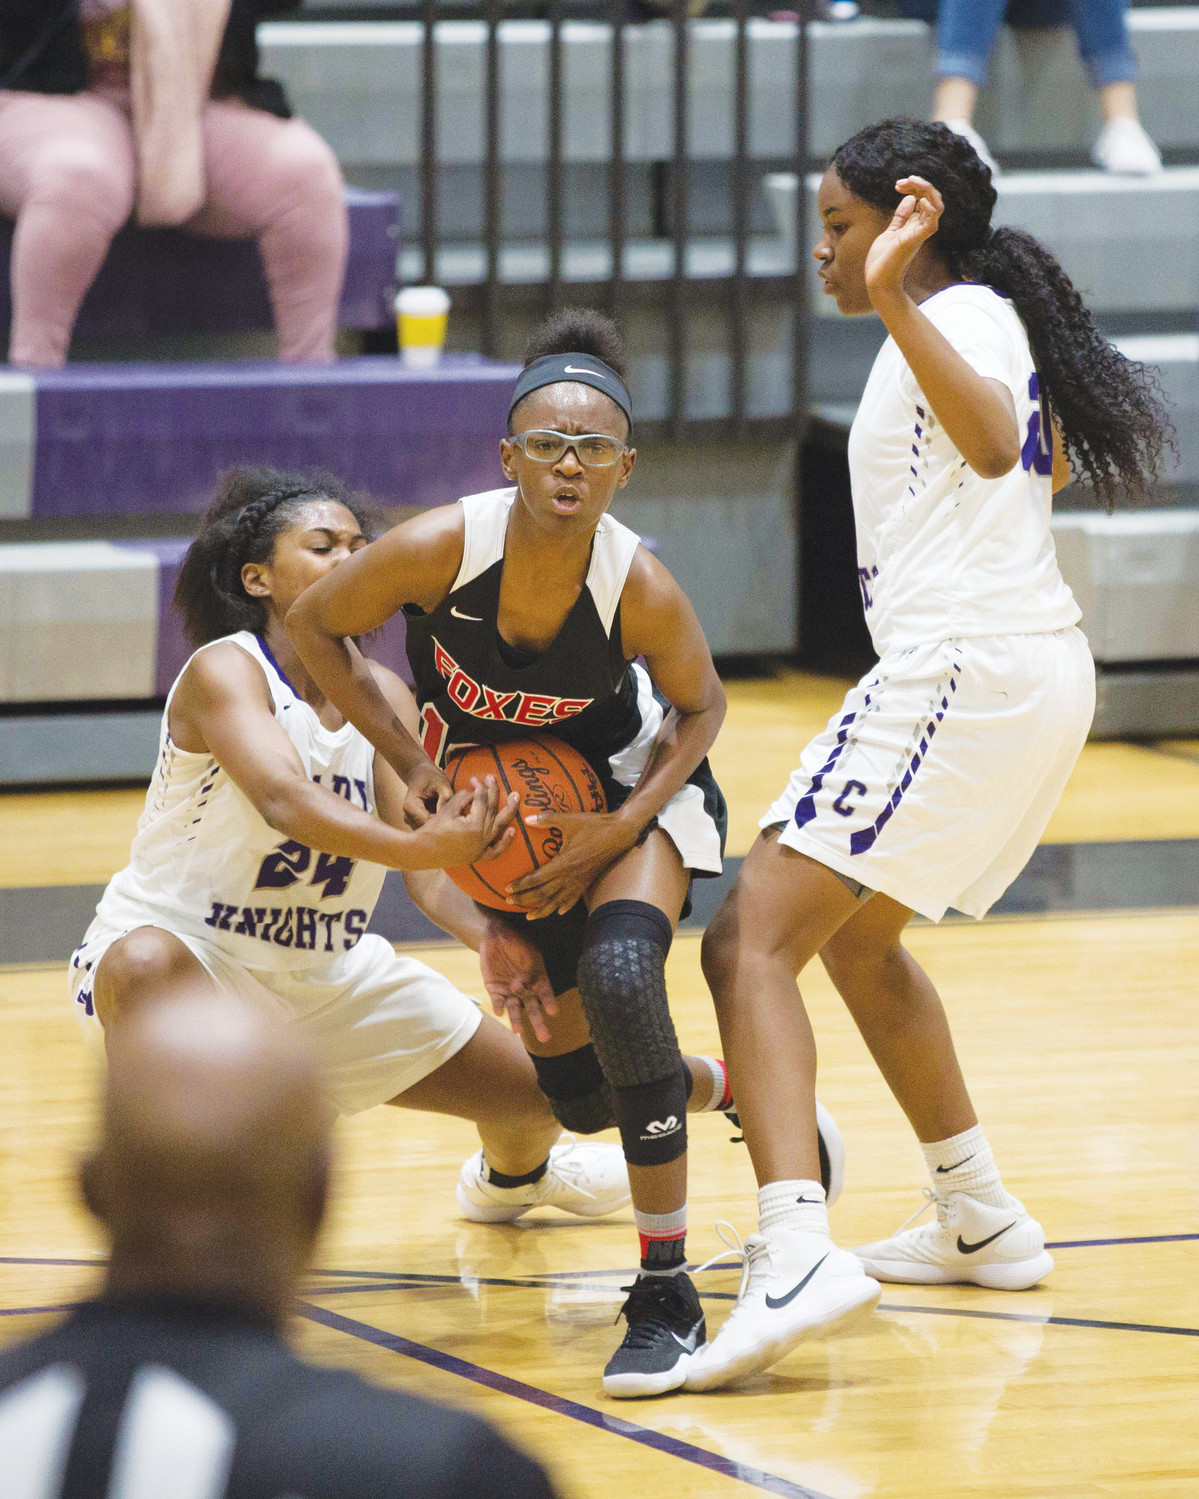 Crestwood's Brittany Epps and Sedajah Remert fight for a ball with a Hartsville player during the Lady Knights' 65-63 loss to the Red Foxes on Tuesday at The Castle.